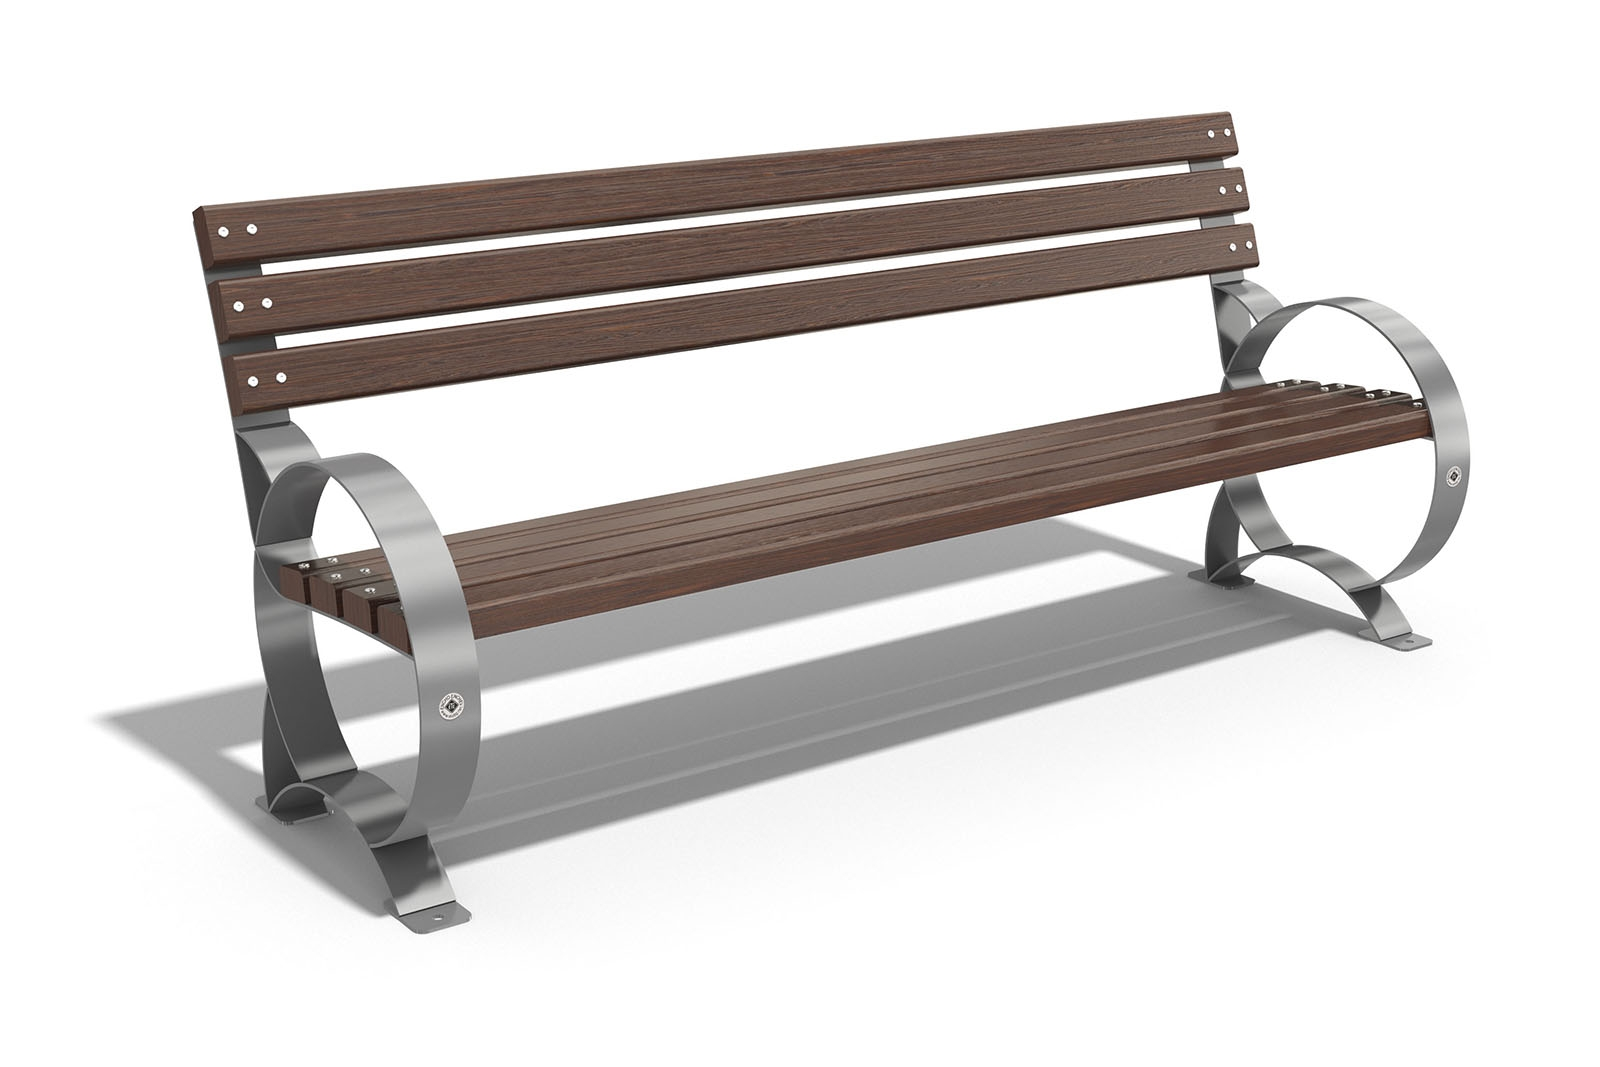 Swell Park Bench With Steel Frame Model 48 Gmtry Best Dining Table And Chair Ideas Images Gmtryco